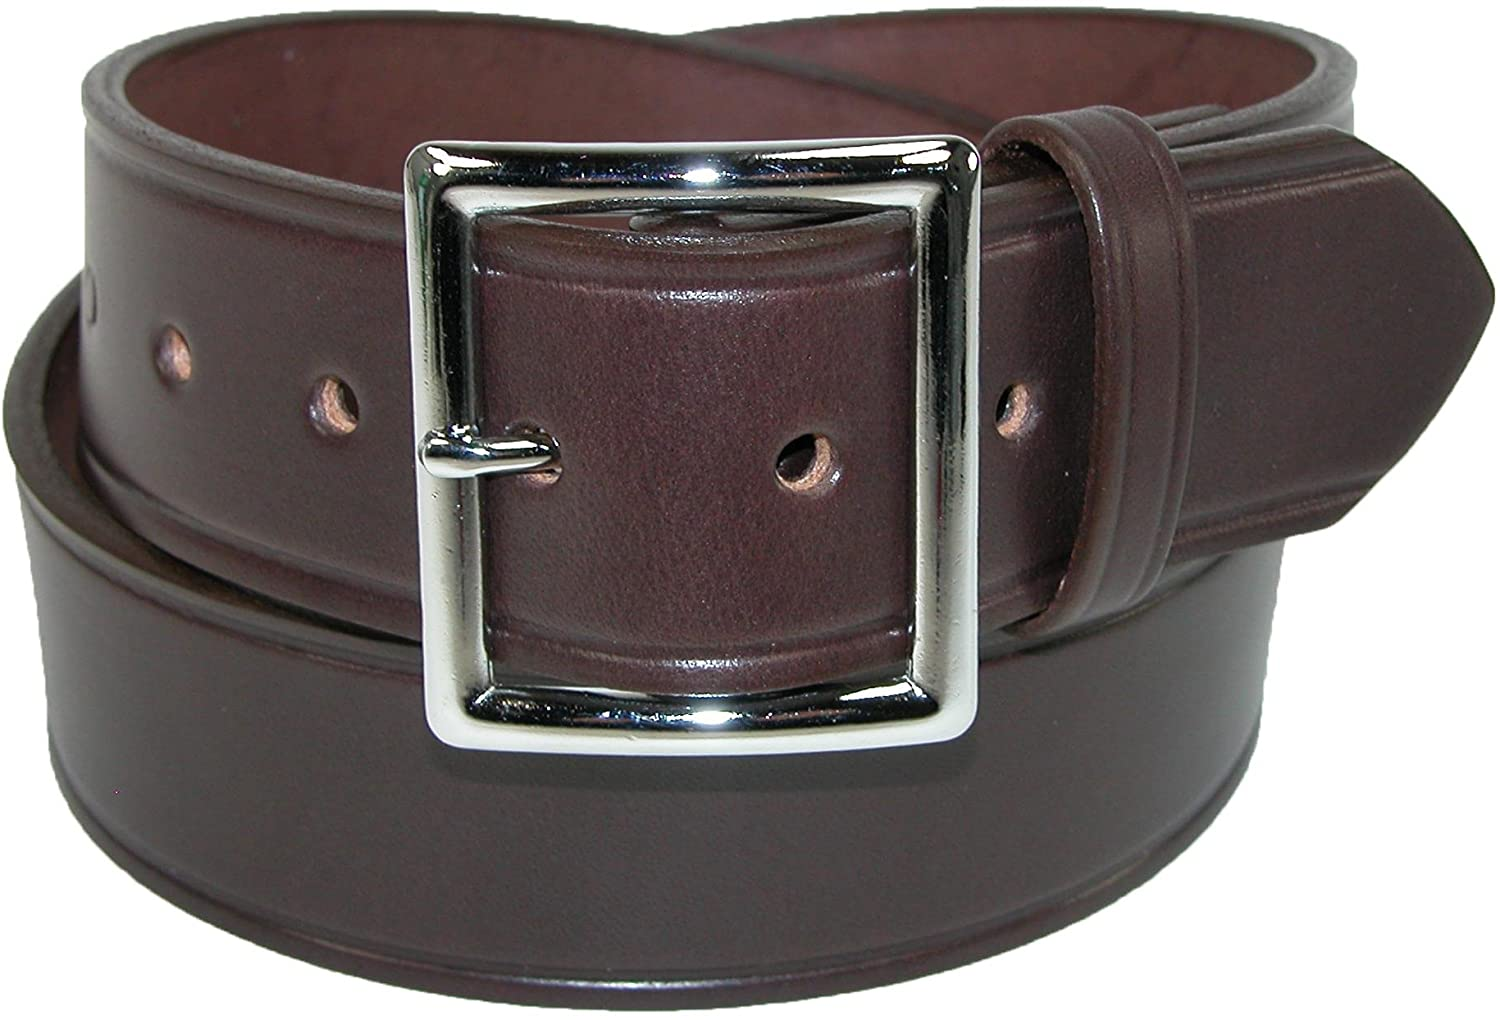 Boston Leather Mens Leather 1 3/4 Inch Garrison Belt